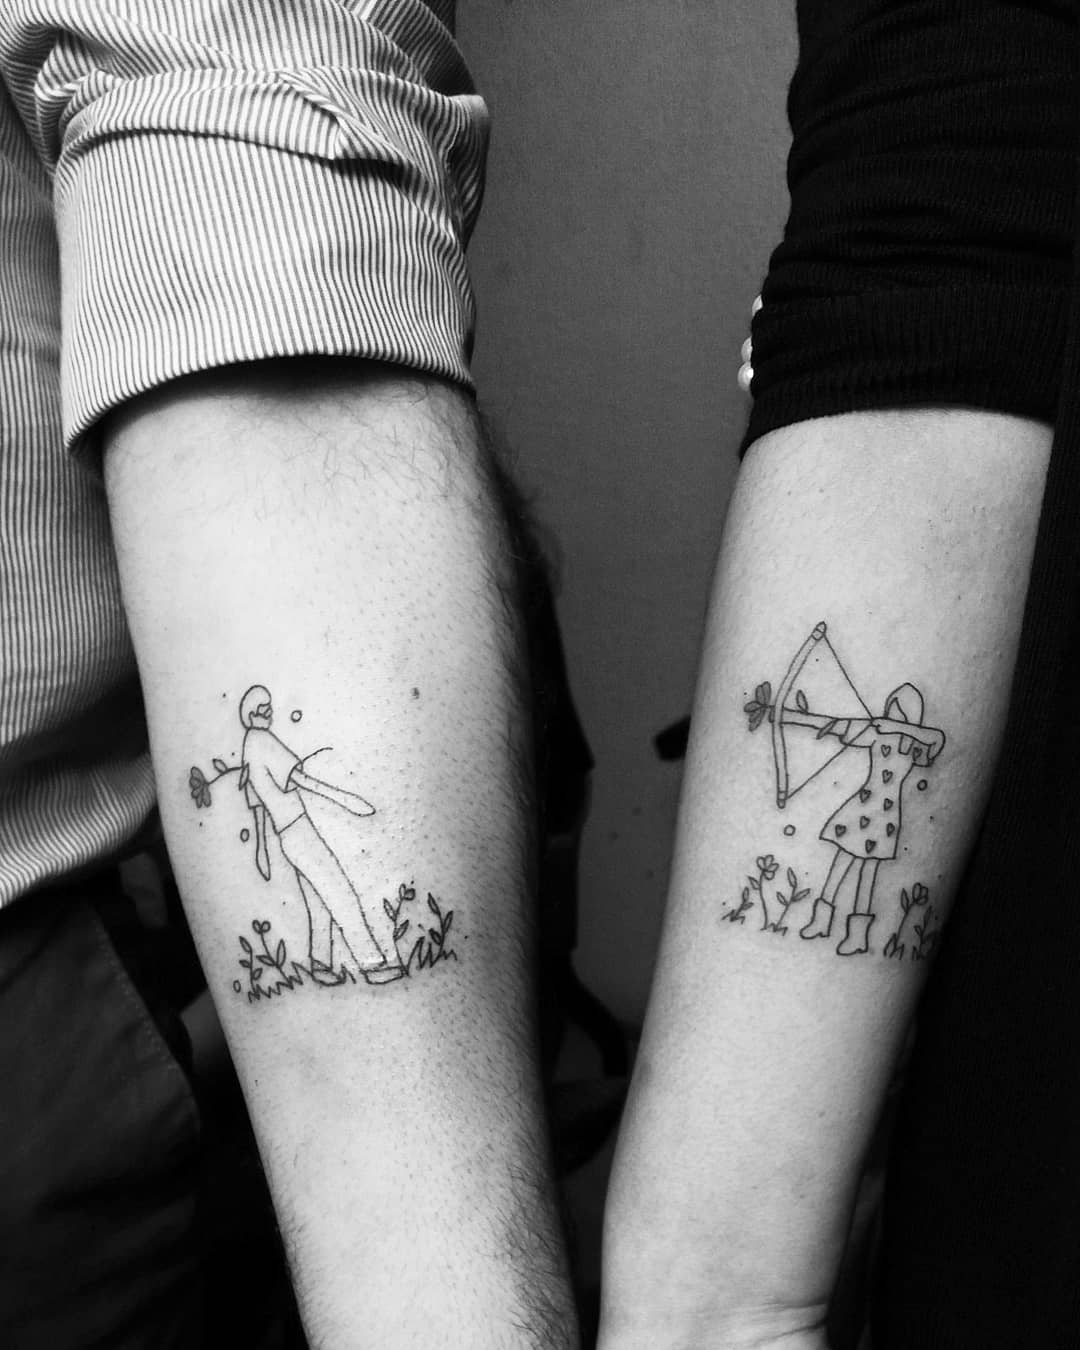 matching tattoo of woman shooting cupids arrow at man